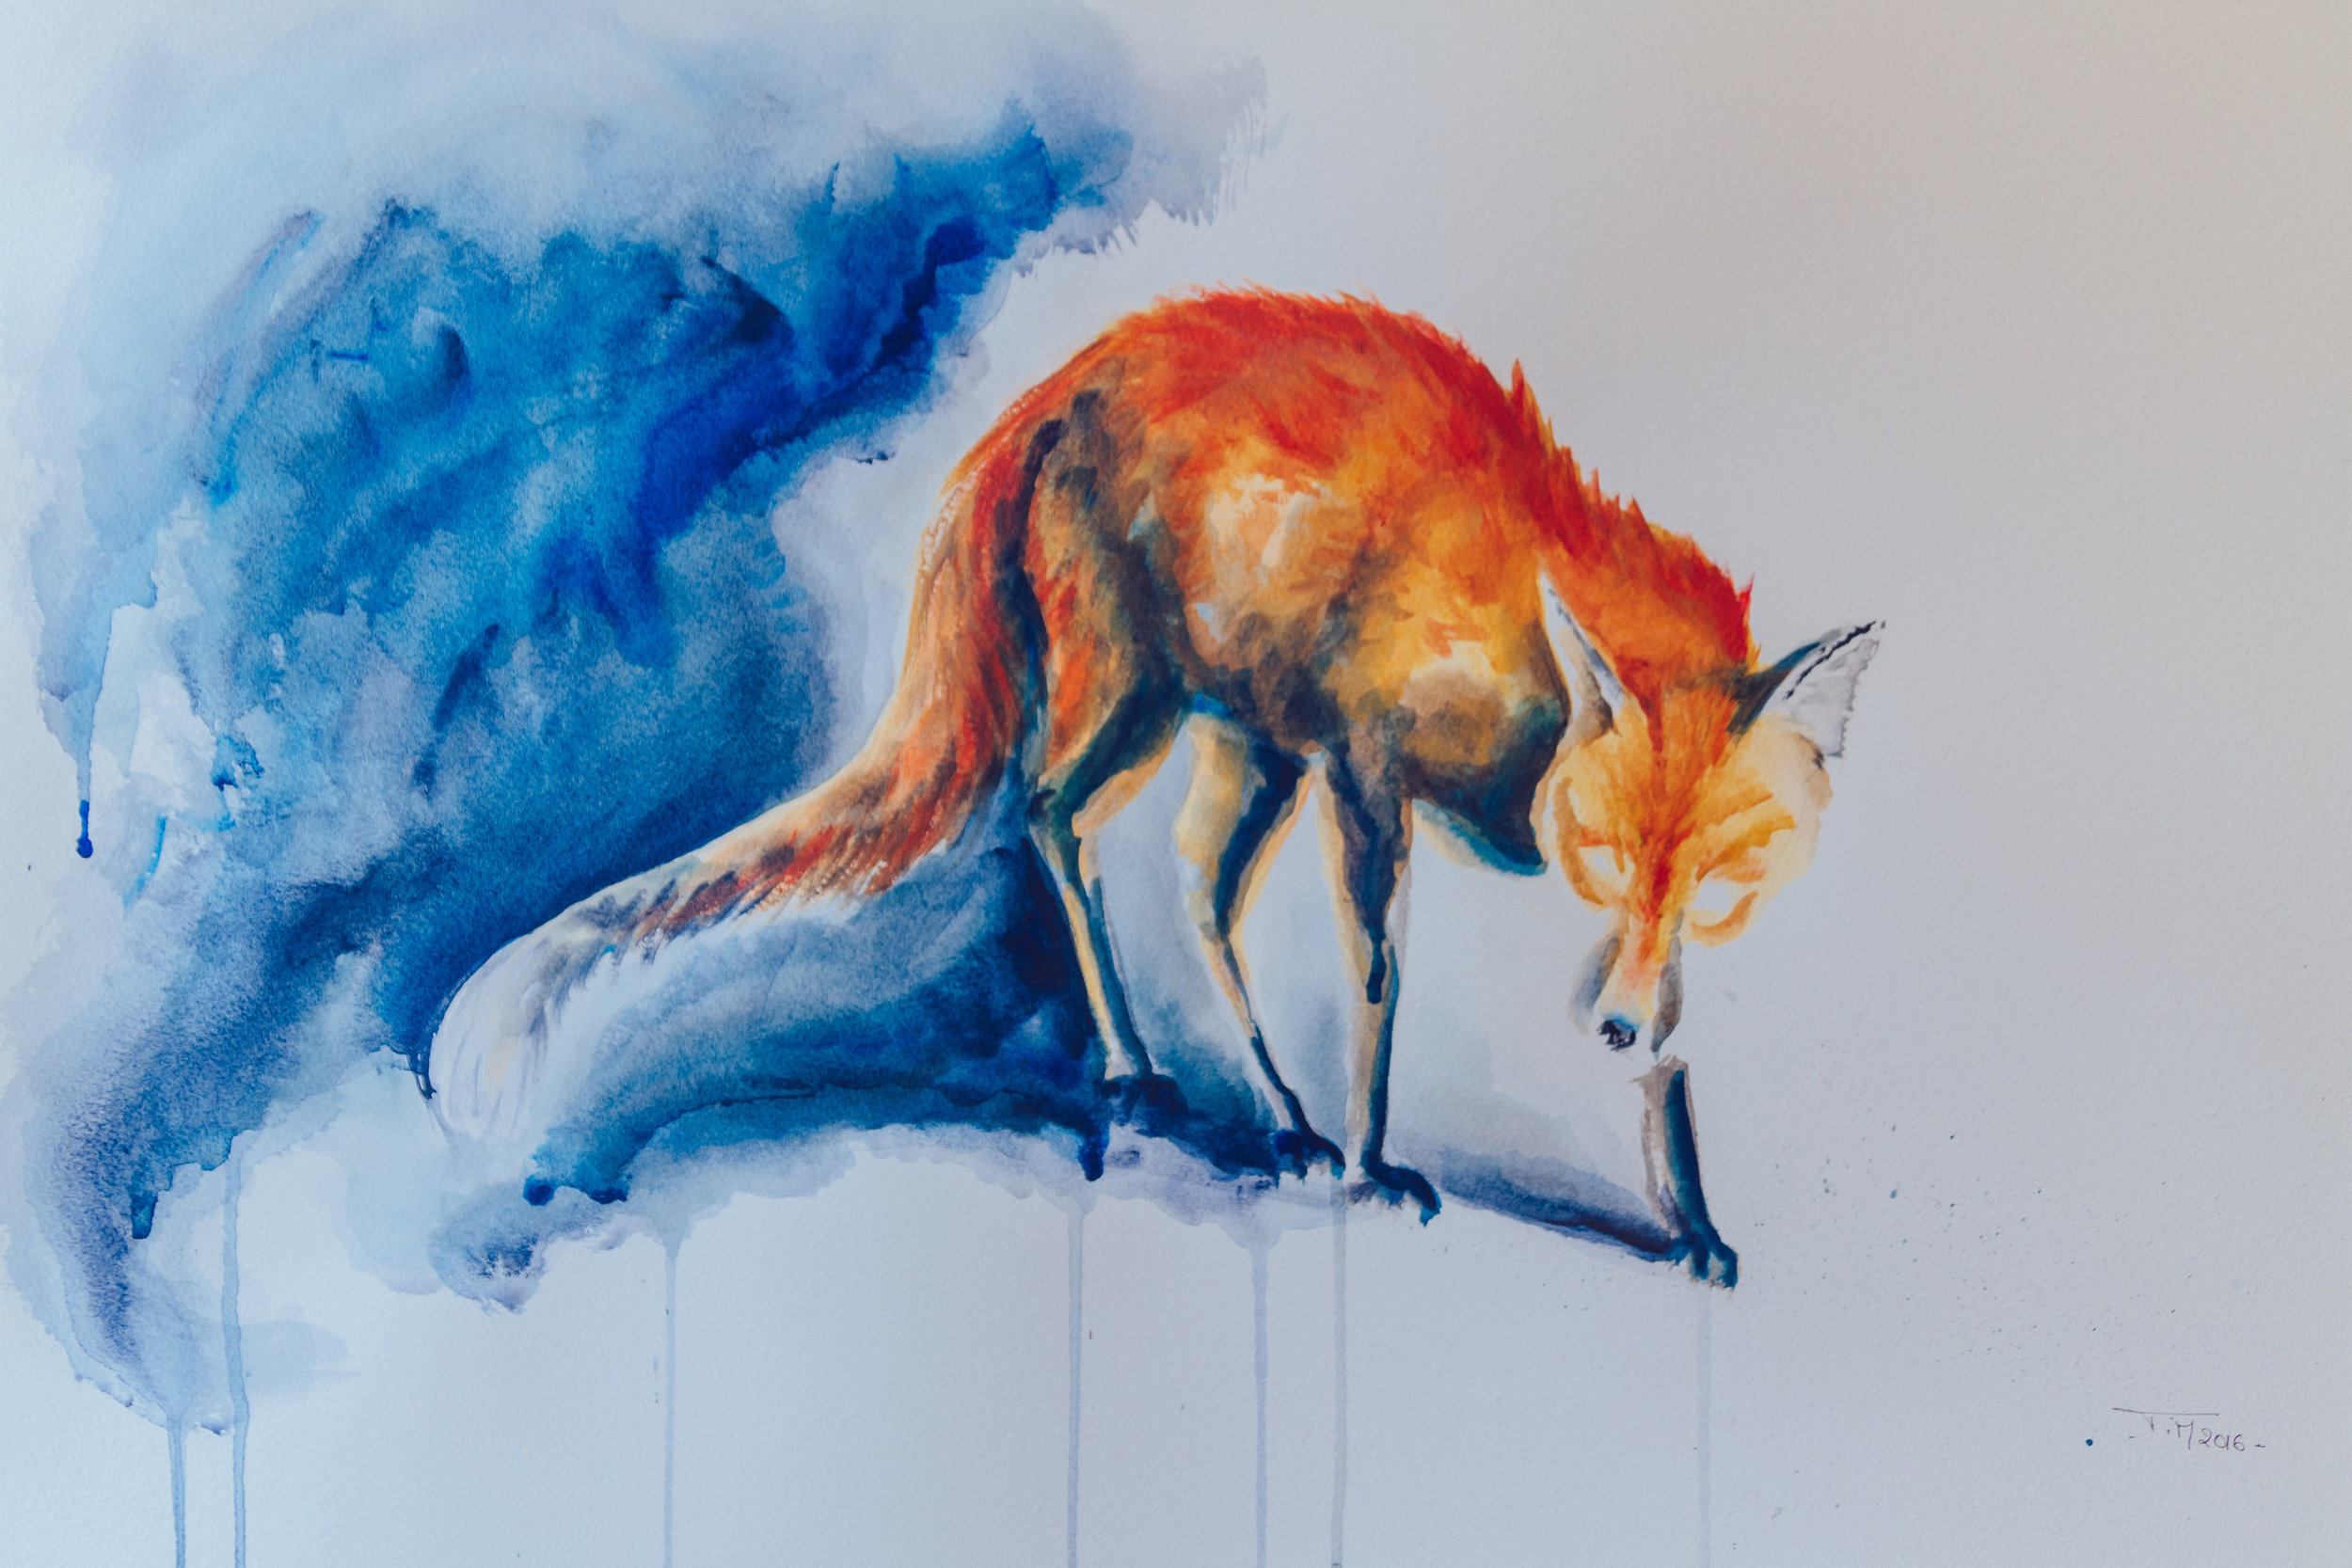 'Urban Fox'  Acrylic on paper  This is an earlier piece from 2016. It's a little scarier than my other fox paintings. I wanted to highlight how a lot of city foxes look; most often they are scrawny, mangy looking with patches of hair missing, especially on the tail. I wanted to make it look a bit like a rat as foxes are often considered as pests.